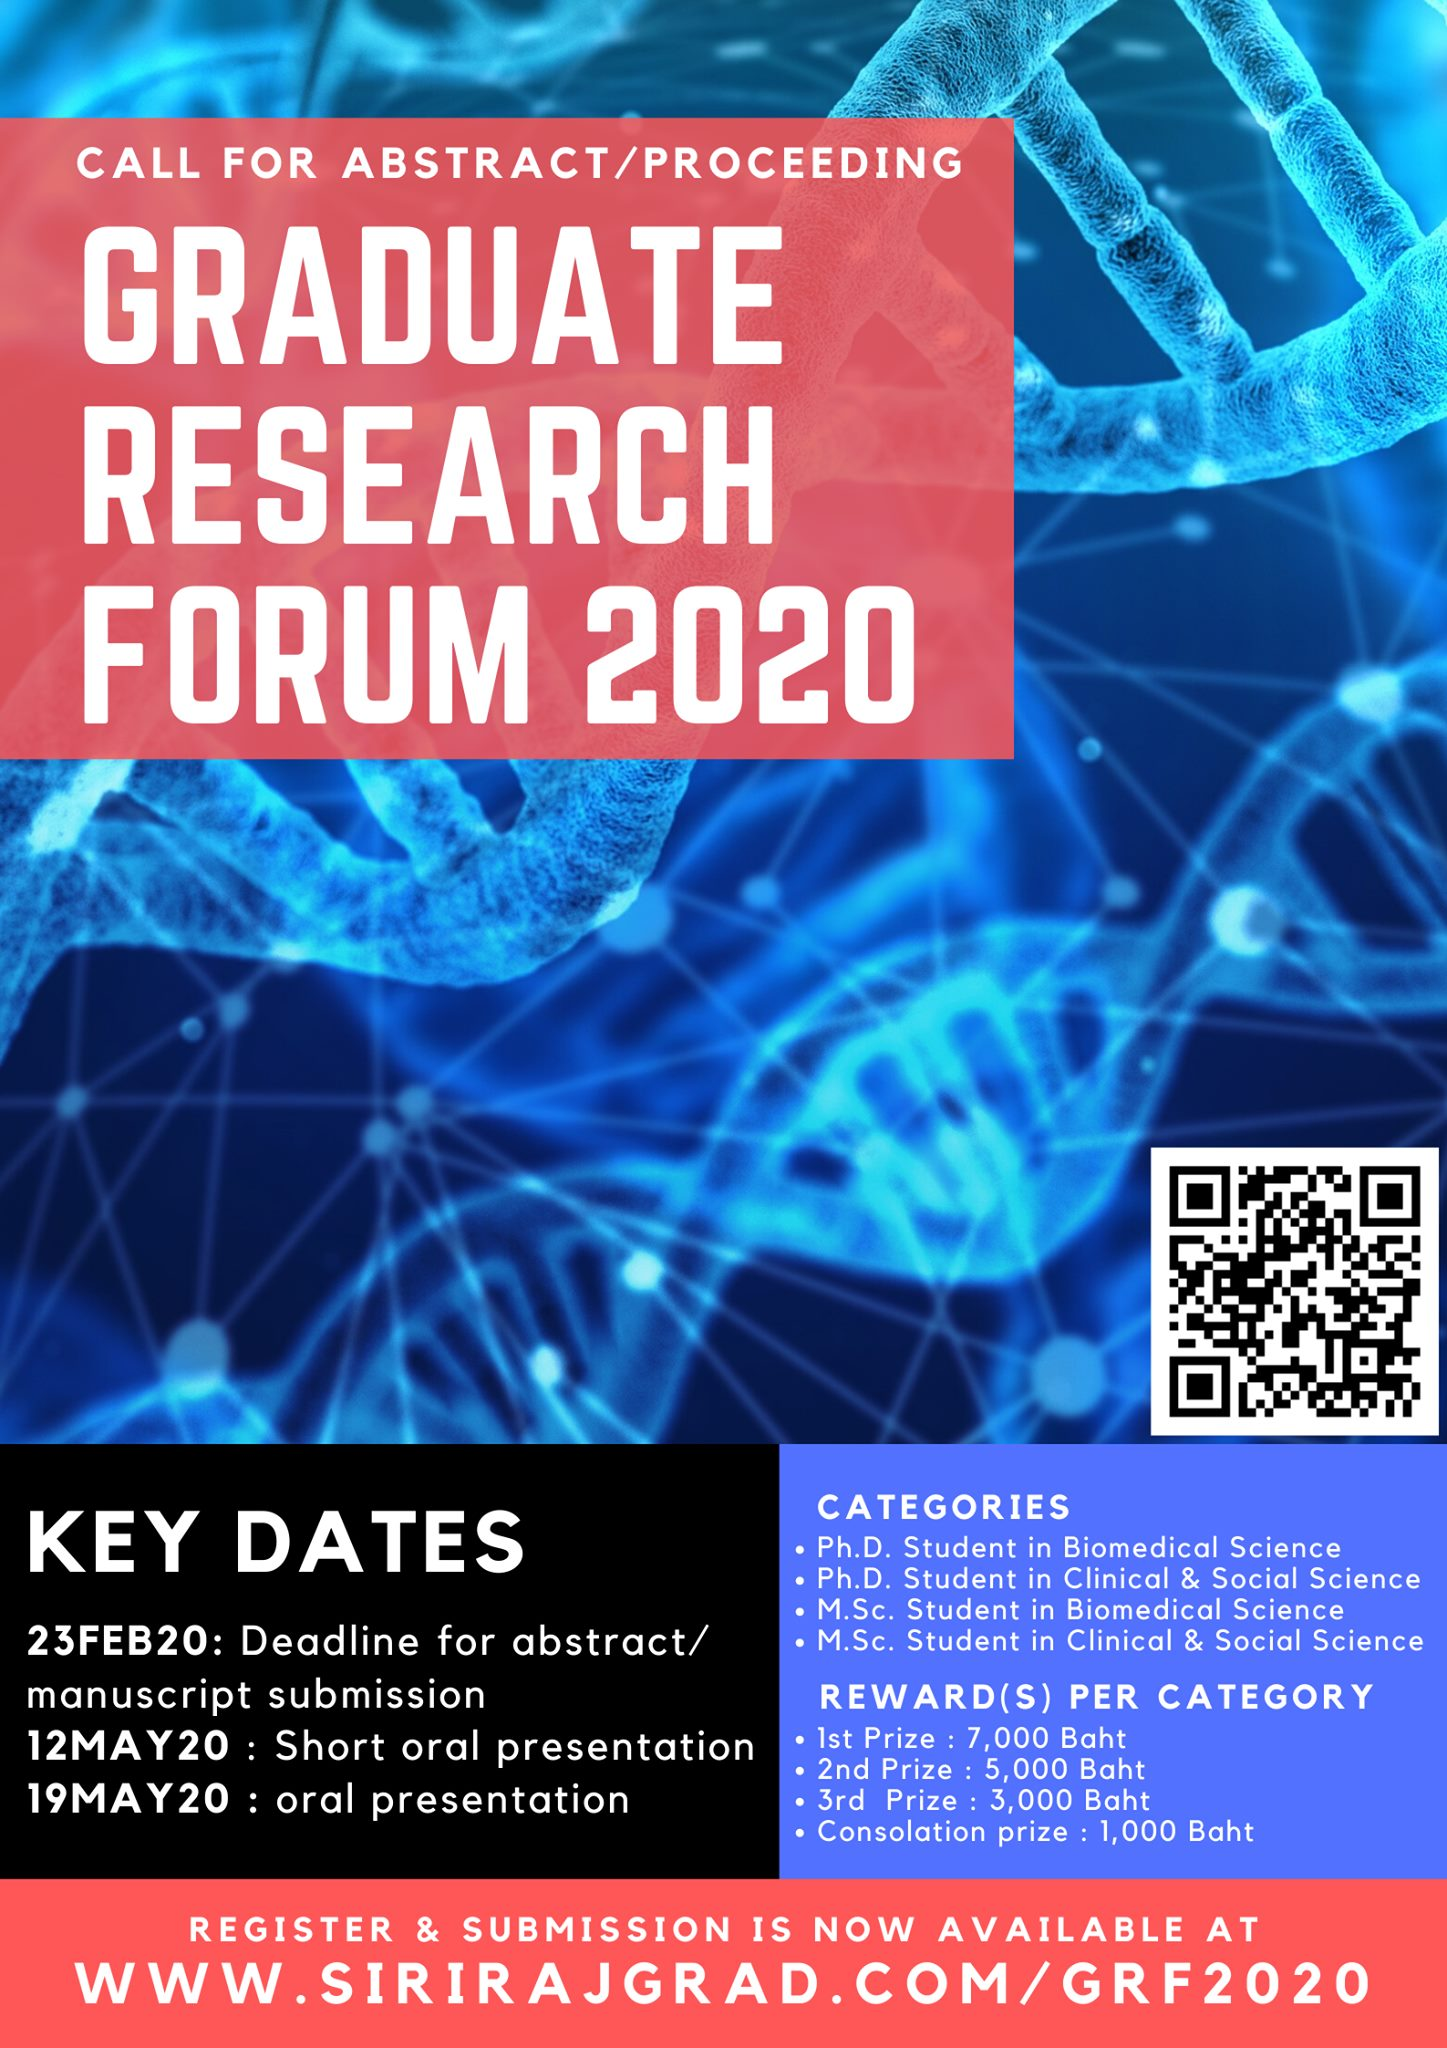 Graduate Research Forum 2020